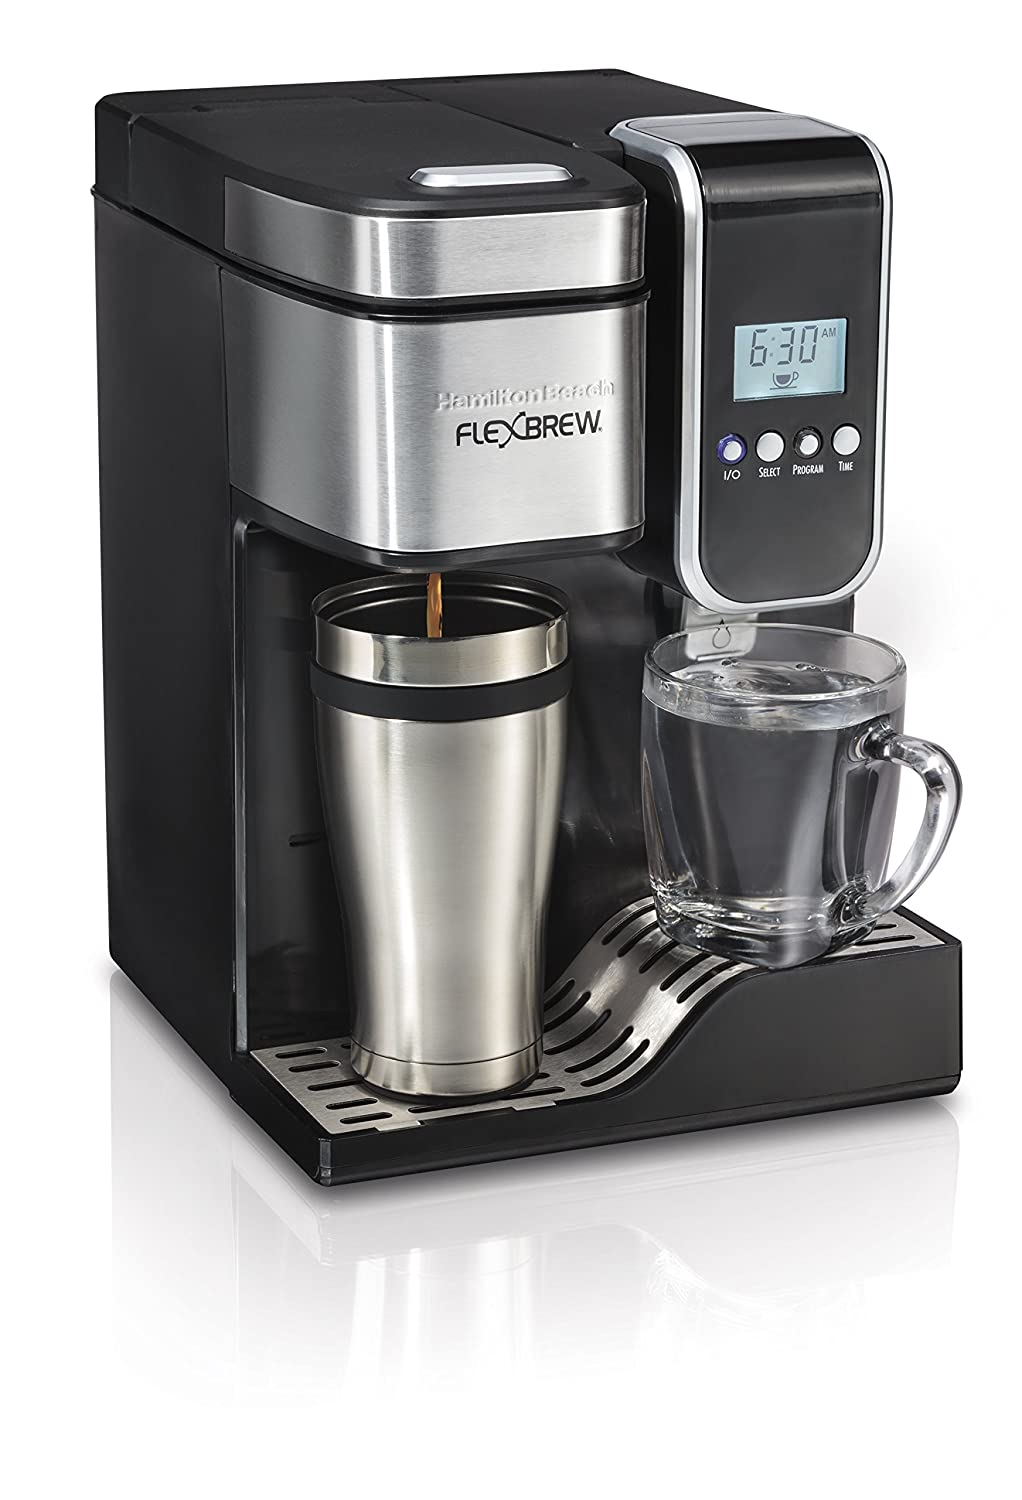 Hamilton Beach Single-Serve Coffee Maker, Programmable FlexBrew with Hot Water Dispenser (49988)